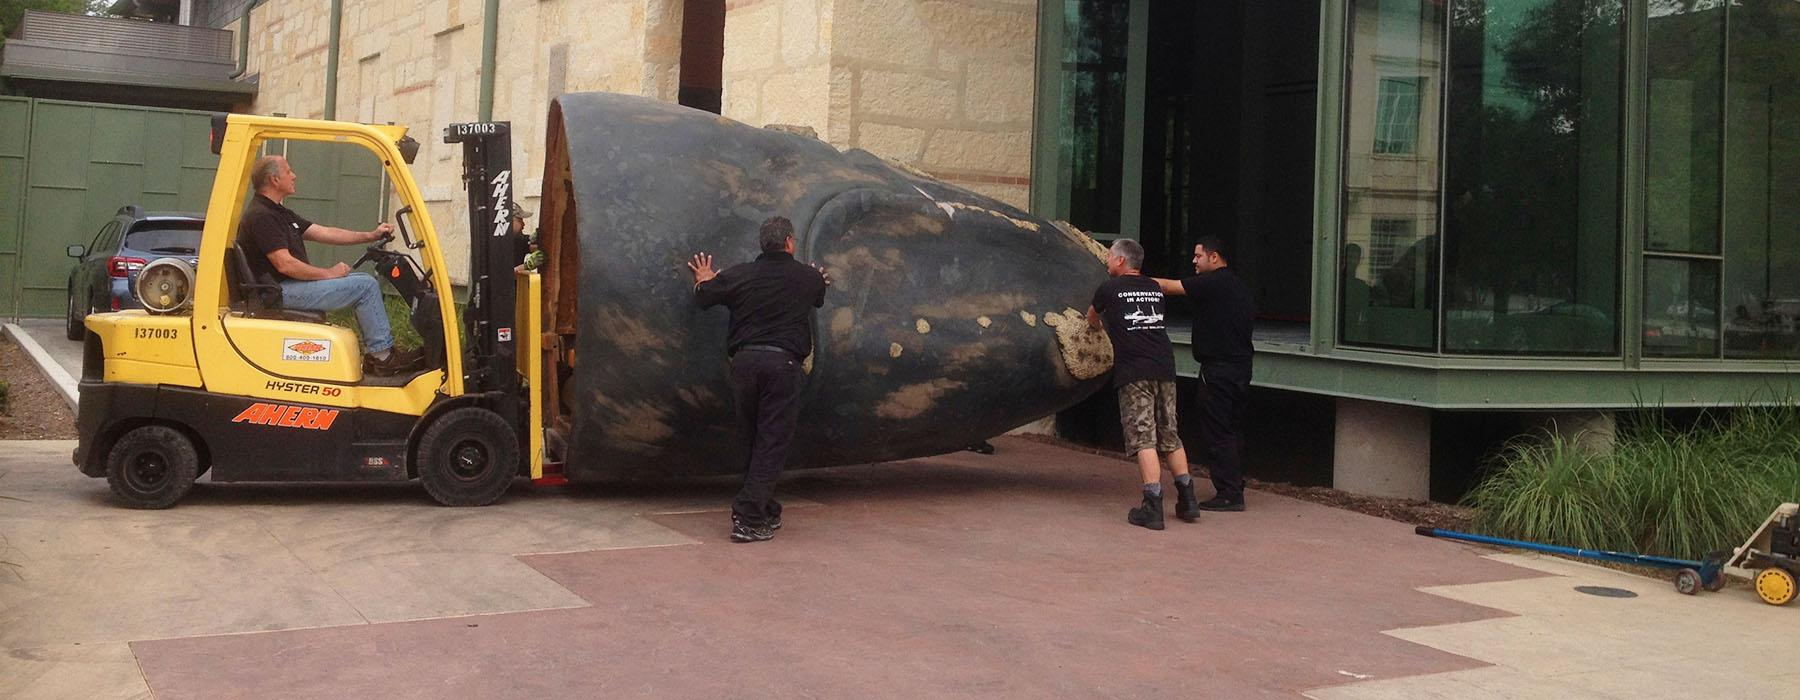 A forklift is used to load part of a whale prop into a building